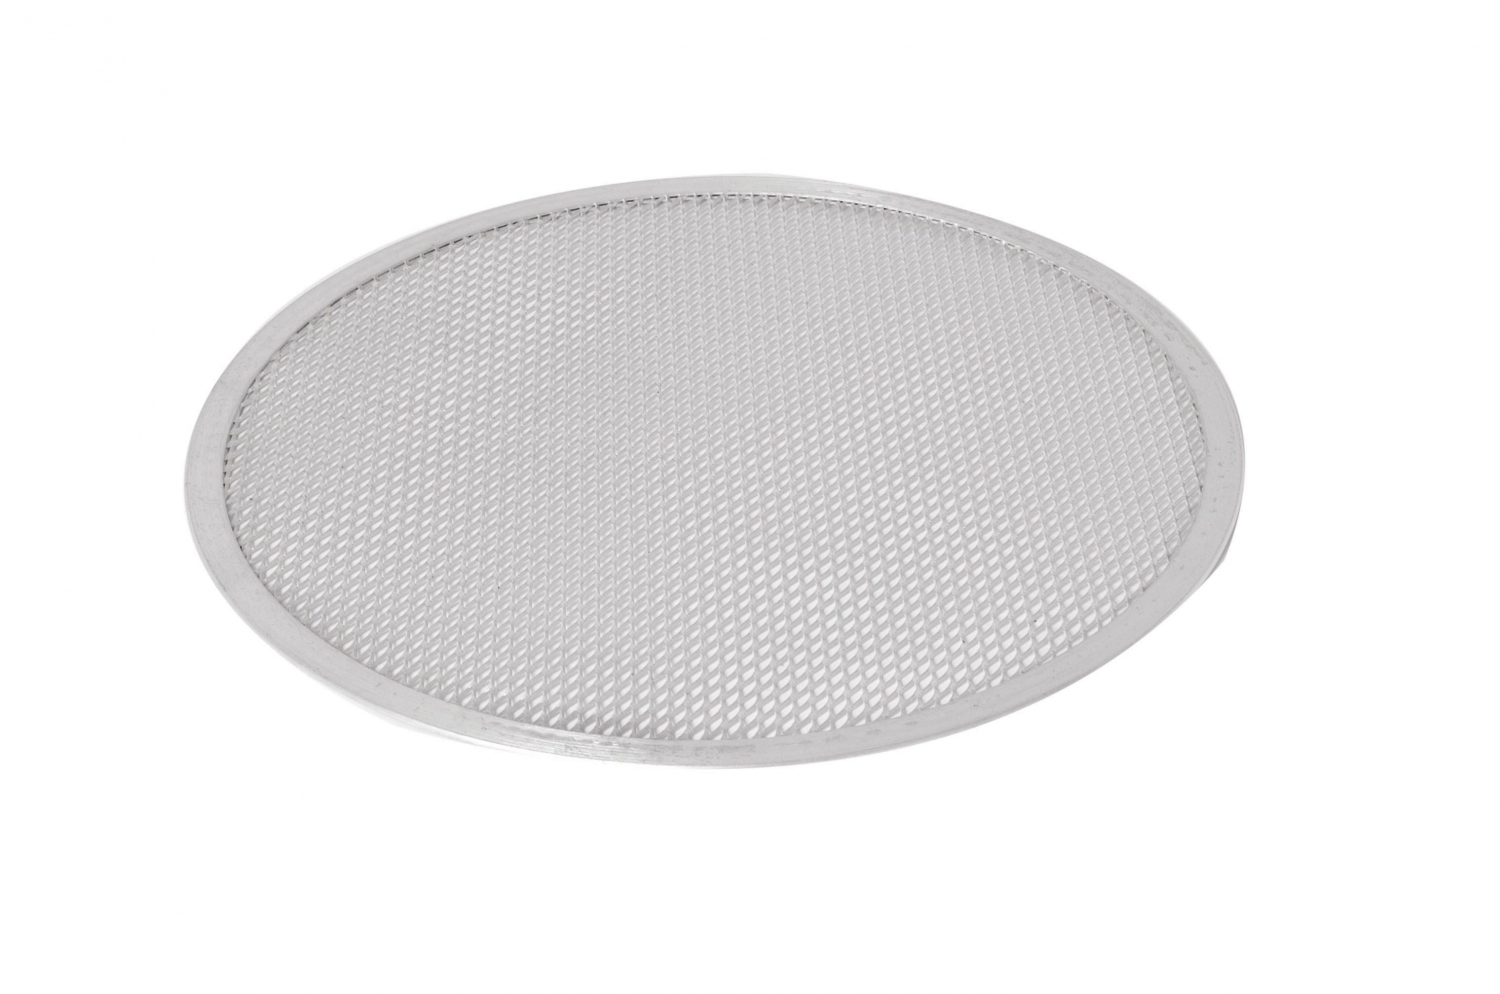 Johnson Rose 42006 Heavy Duty Seamless Rim Pizza Screen  6""